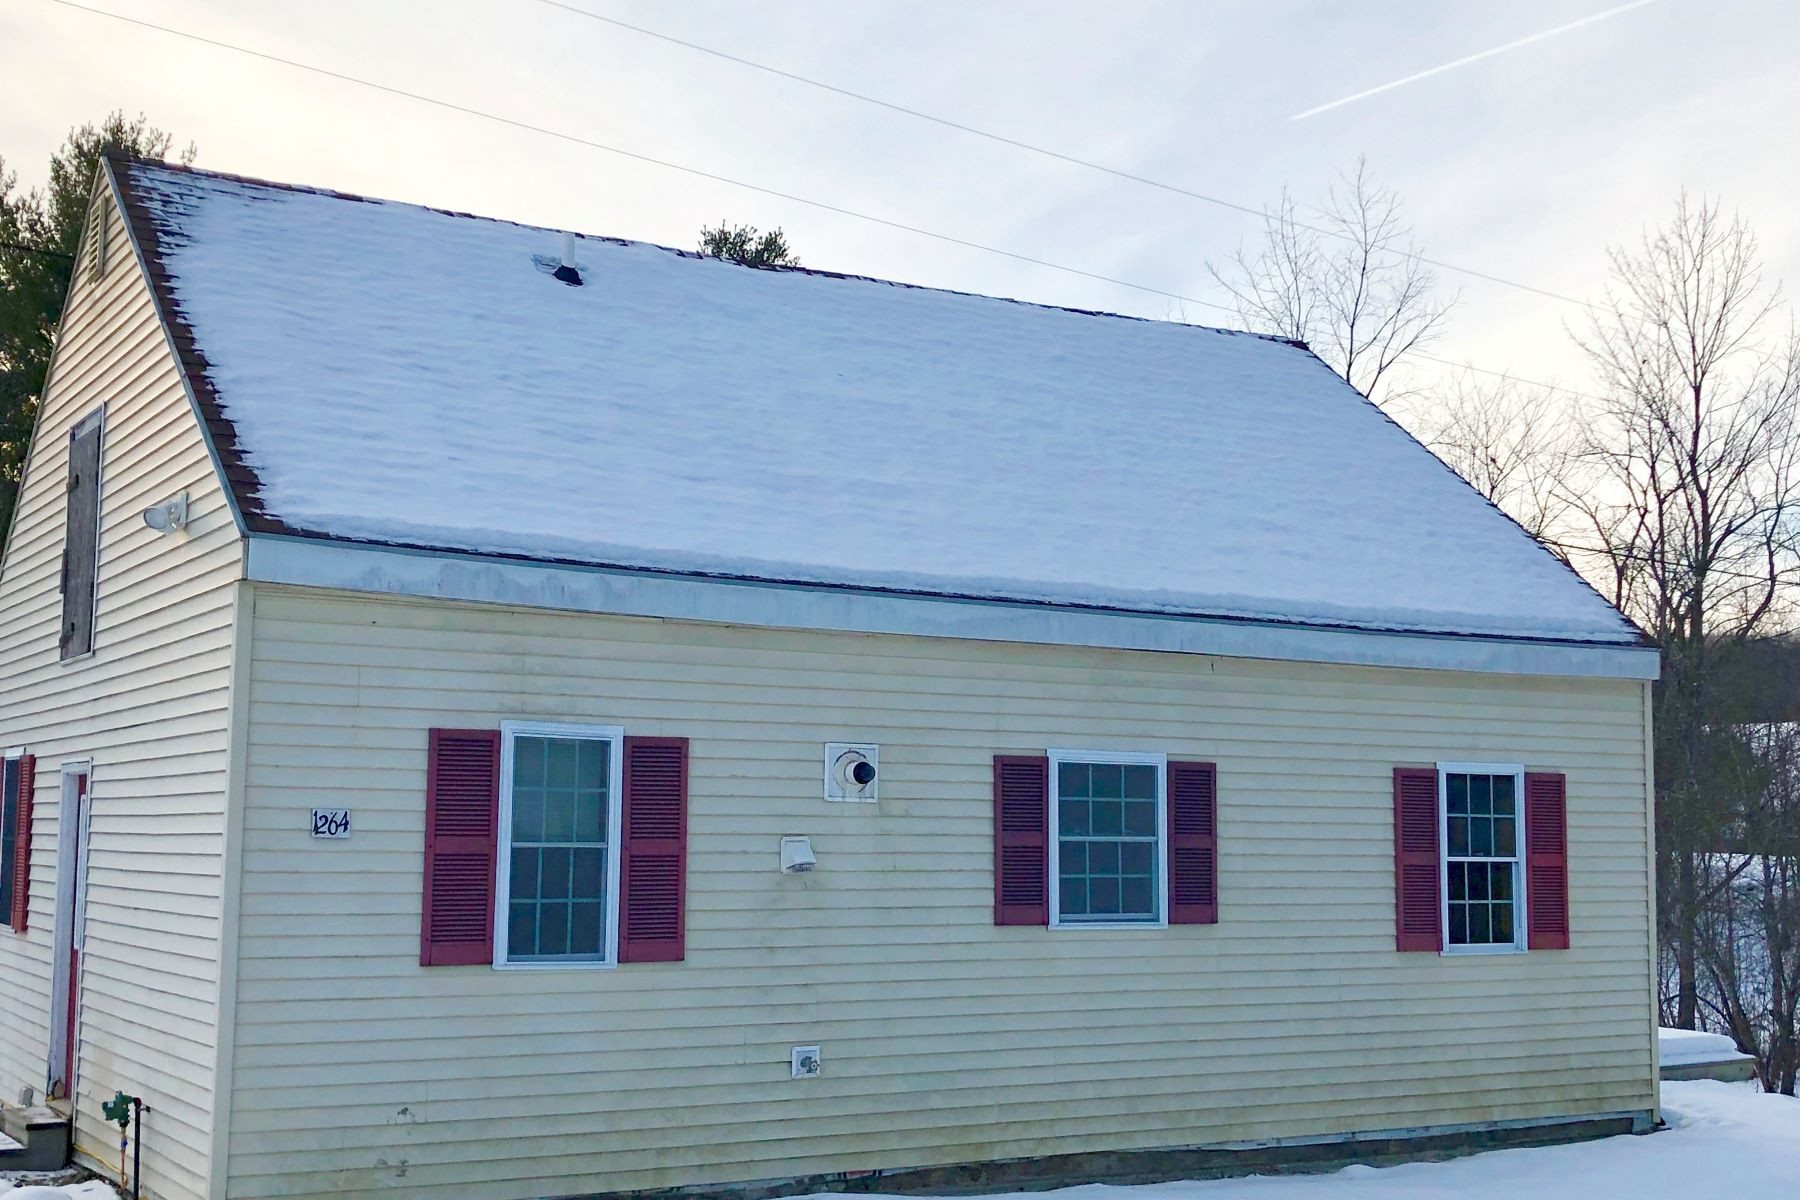 Single Family Home for Sale at One Bedroom Cape in Haverhill 1264 Court St Haverhill, New Hampshire 03765 United States